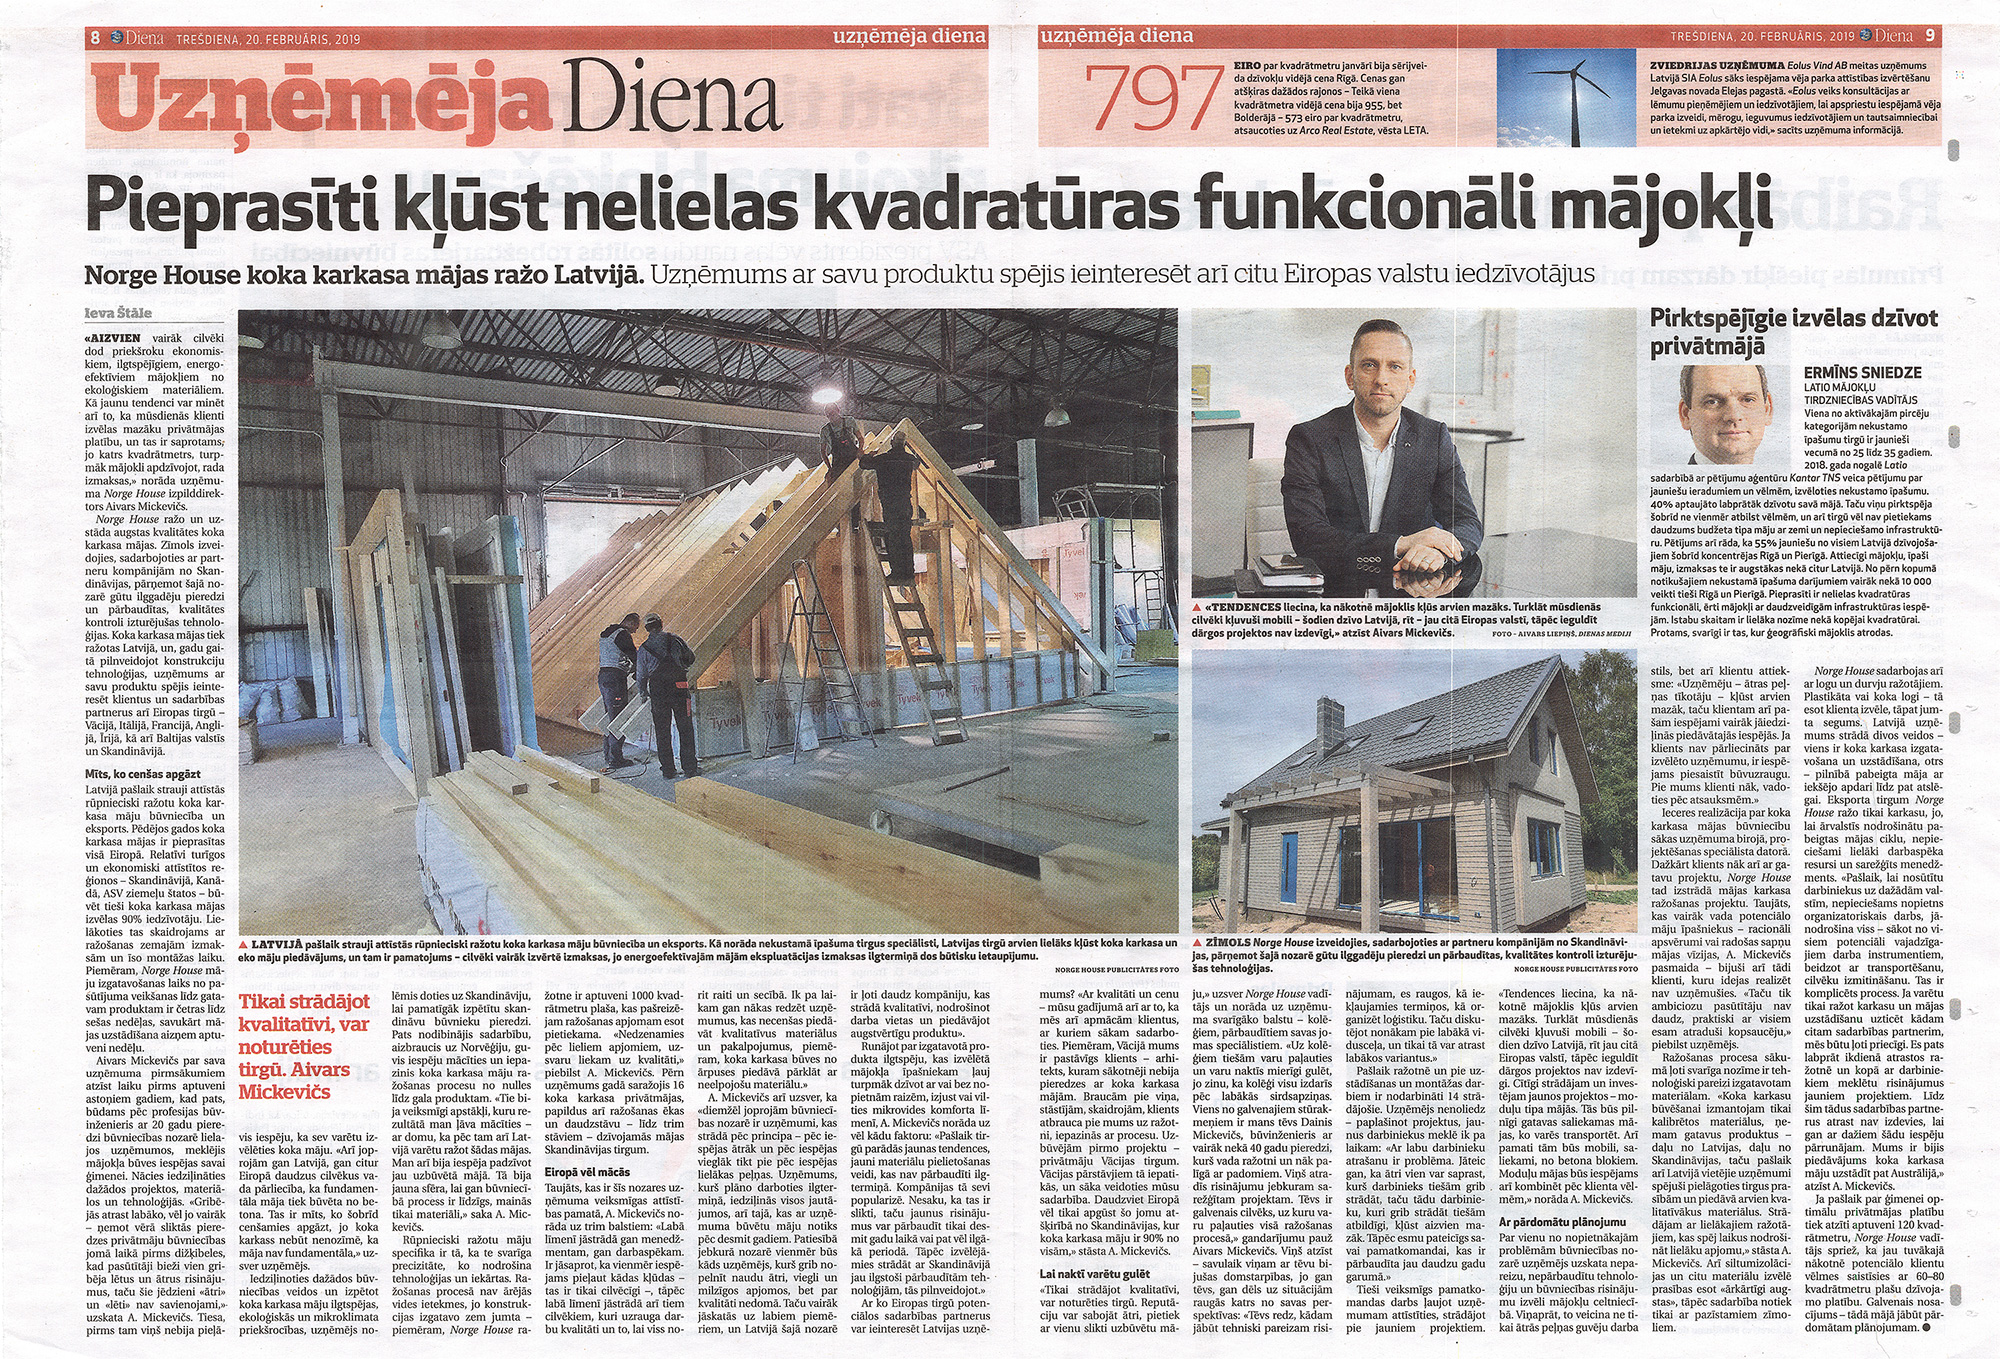 Norge House article in newspaper Diena.